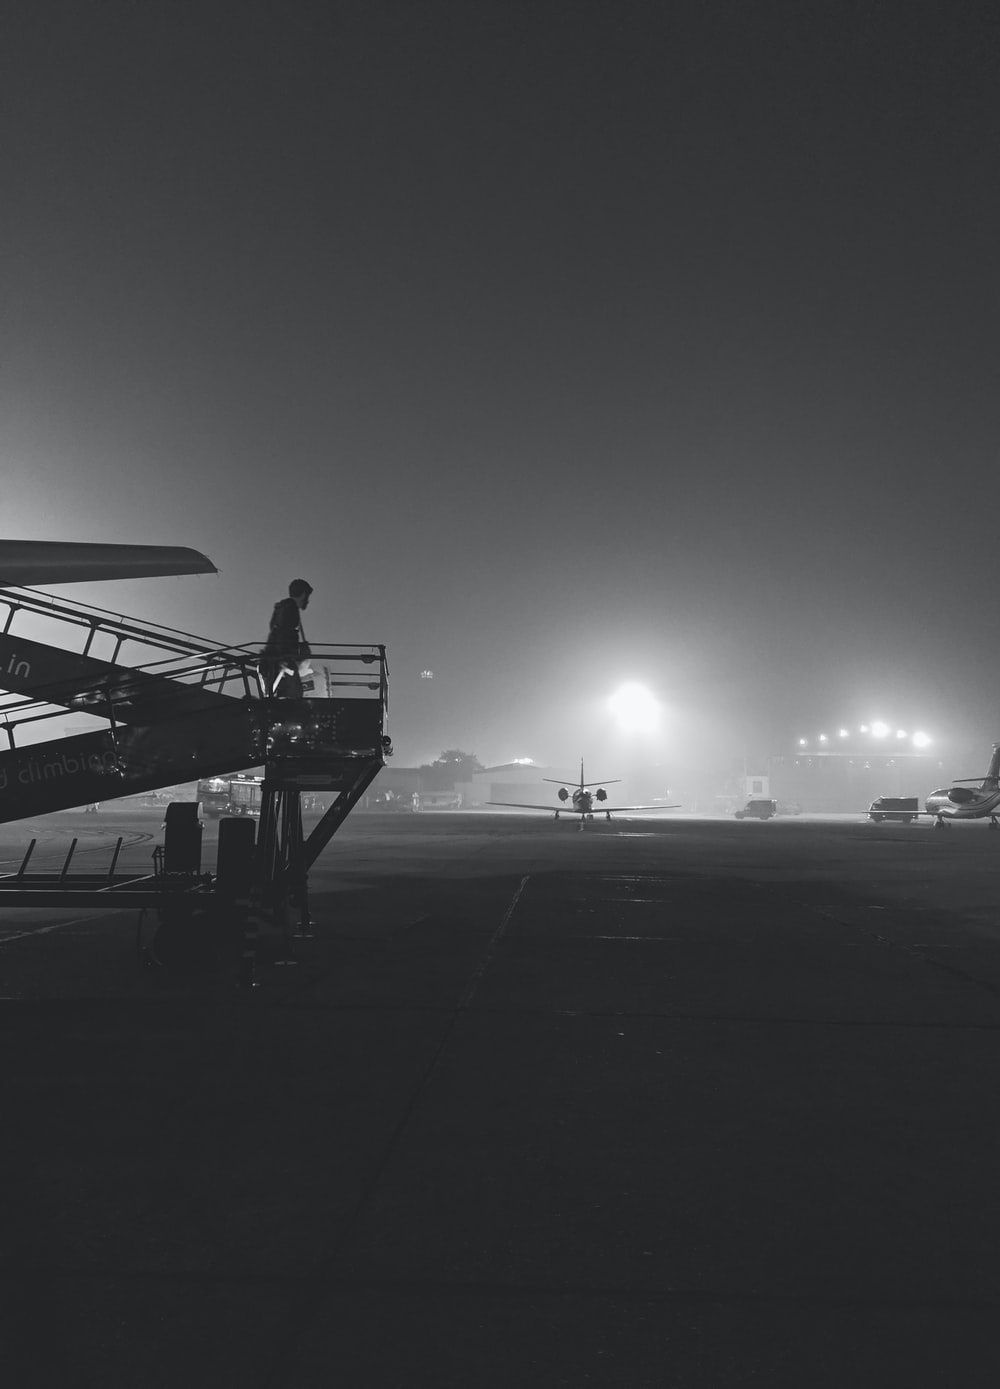 grayscale photography of person walking on airliner stairs